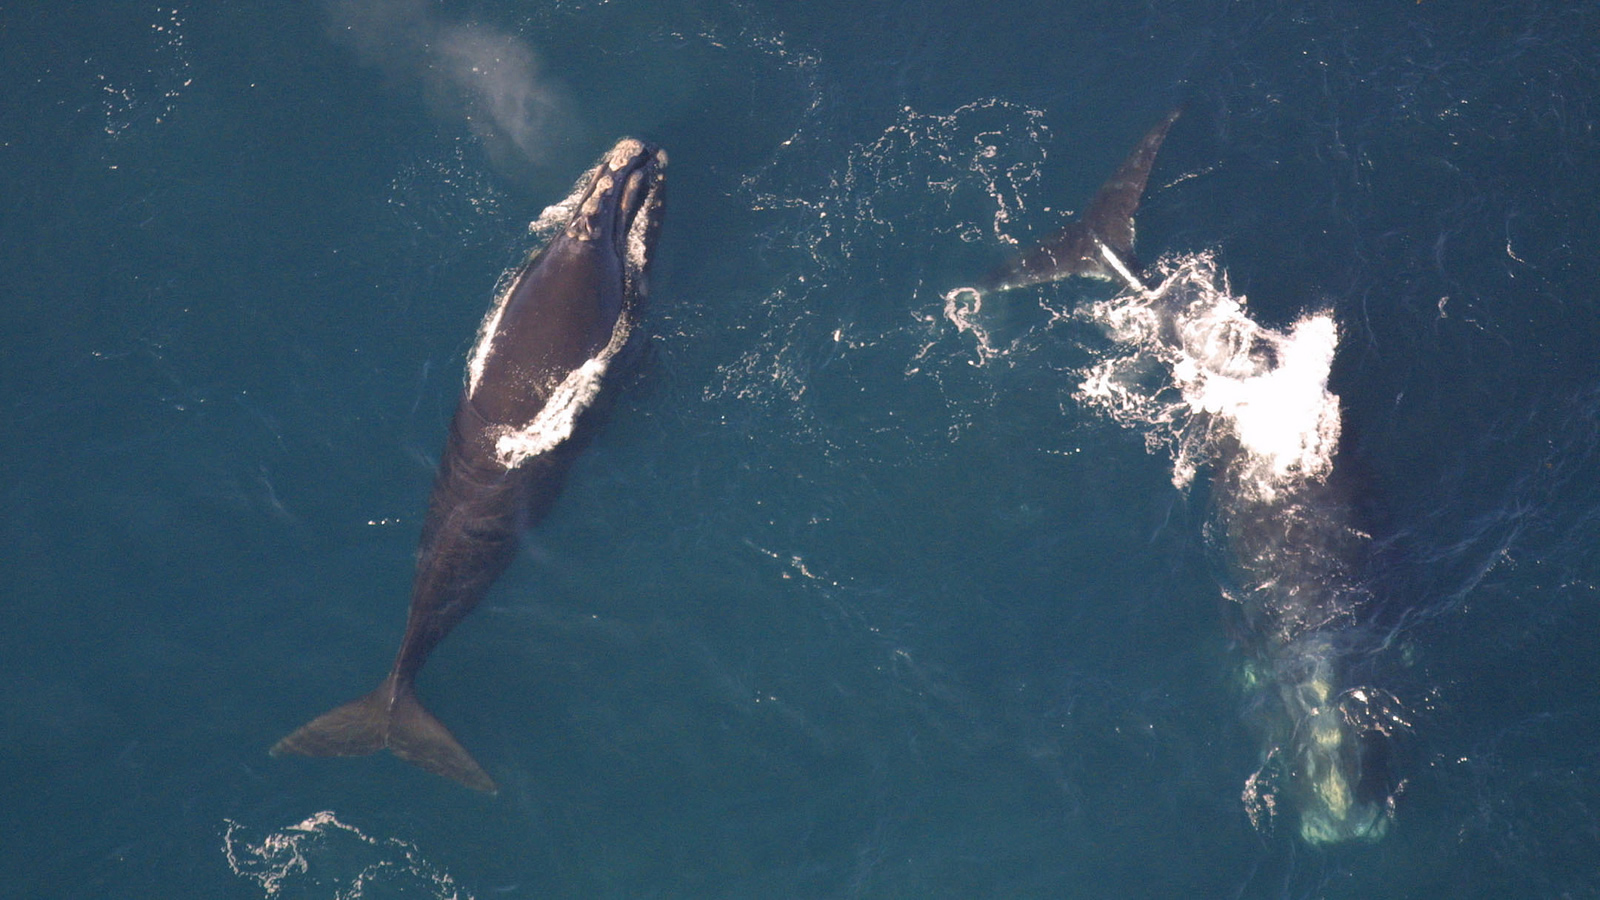 <h4>LOWERING THE BOOM ON WHALES</h4><h5>To search for oil, companies use seismic testing: an innocuous term for loud booms delivered every 10 seconds, 24 hours a day, for days or weeks at a time—disrupting the health of marine animals.</h5><em>NOAA</em>